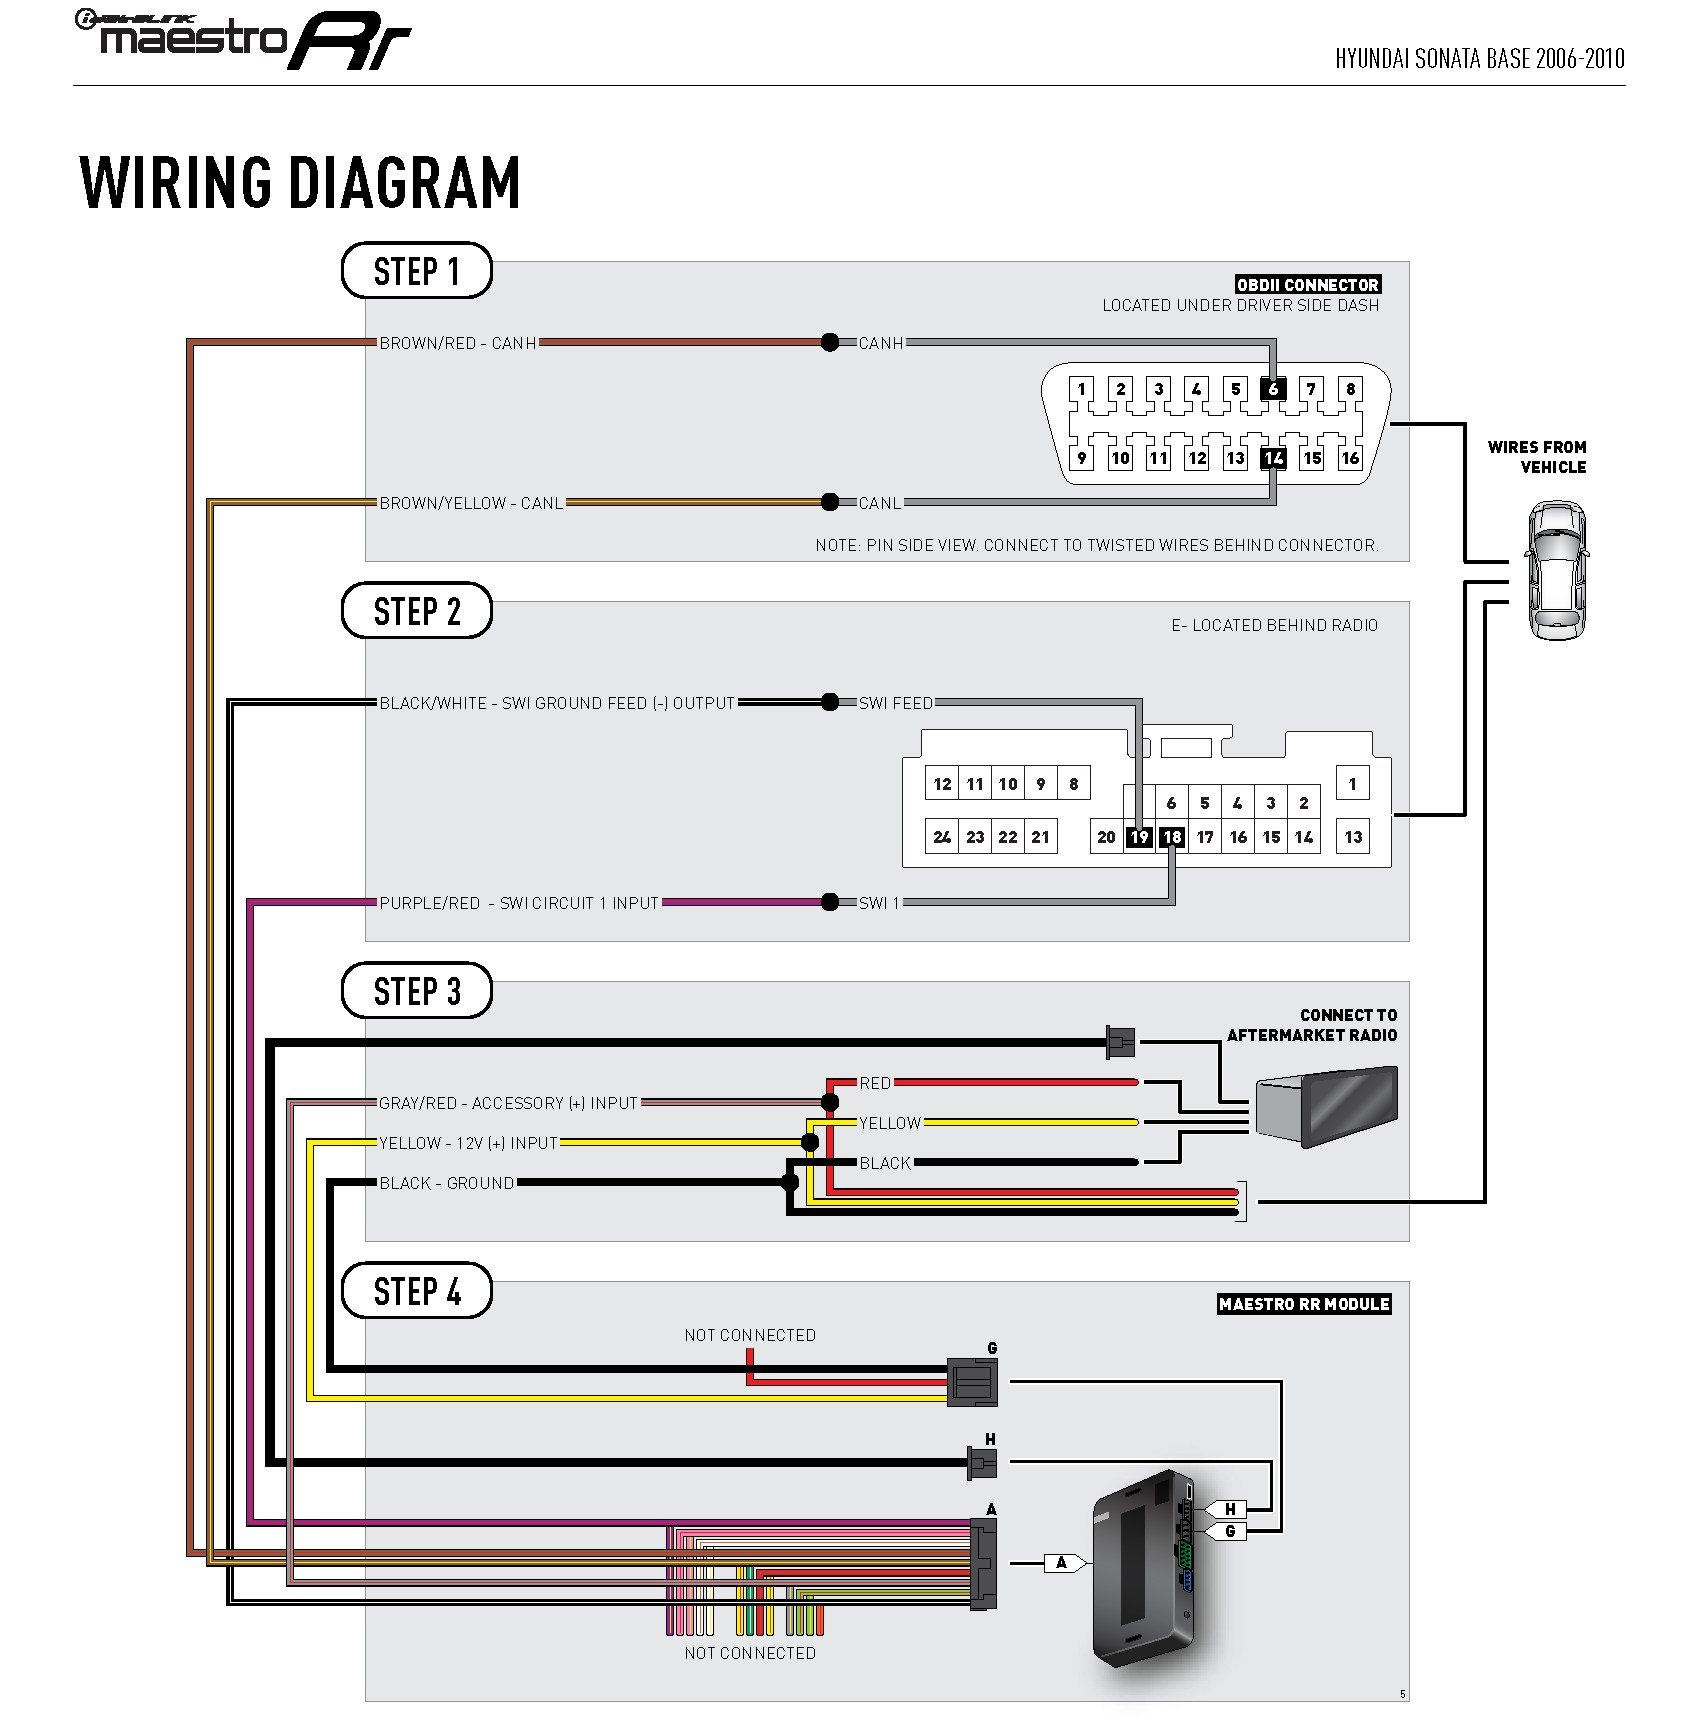 maestro rr wiring diagram best of wiring diagram image Maestro Guitar Wiring at Maestro Rr Wiring Diagram